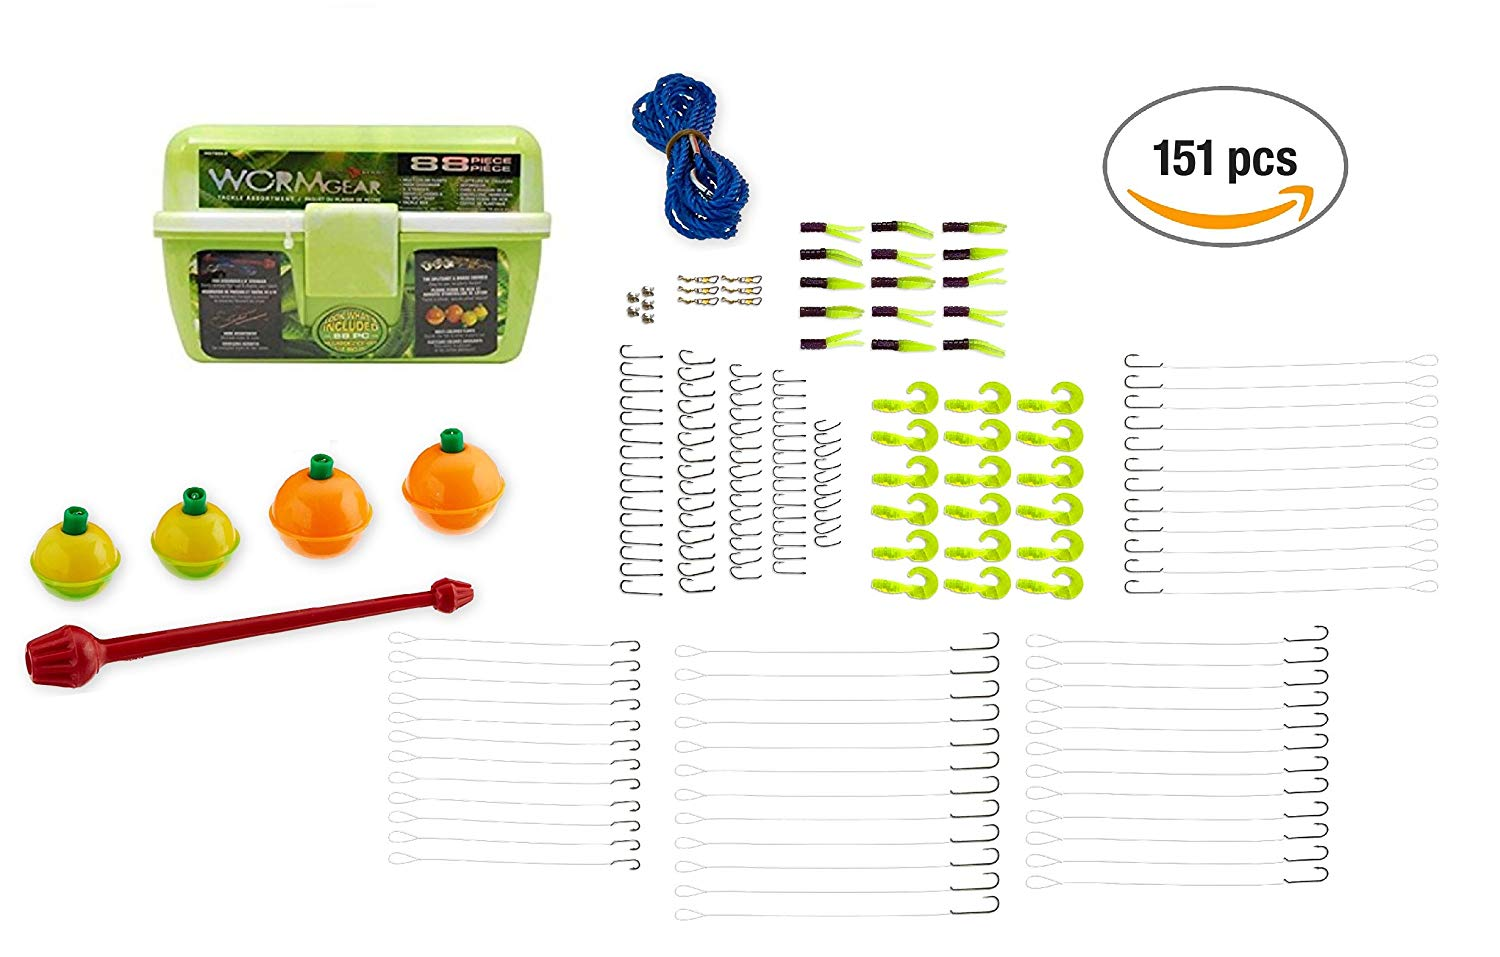 151 pcs Fishing Tacklebox with Tackle - Extra Fishing Jigs & Fishing Hooks Bundle | Fishing Gear Tackle Organizer Great for Bass Fishing & Trout Fishing | Extra Fishing Accessories